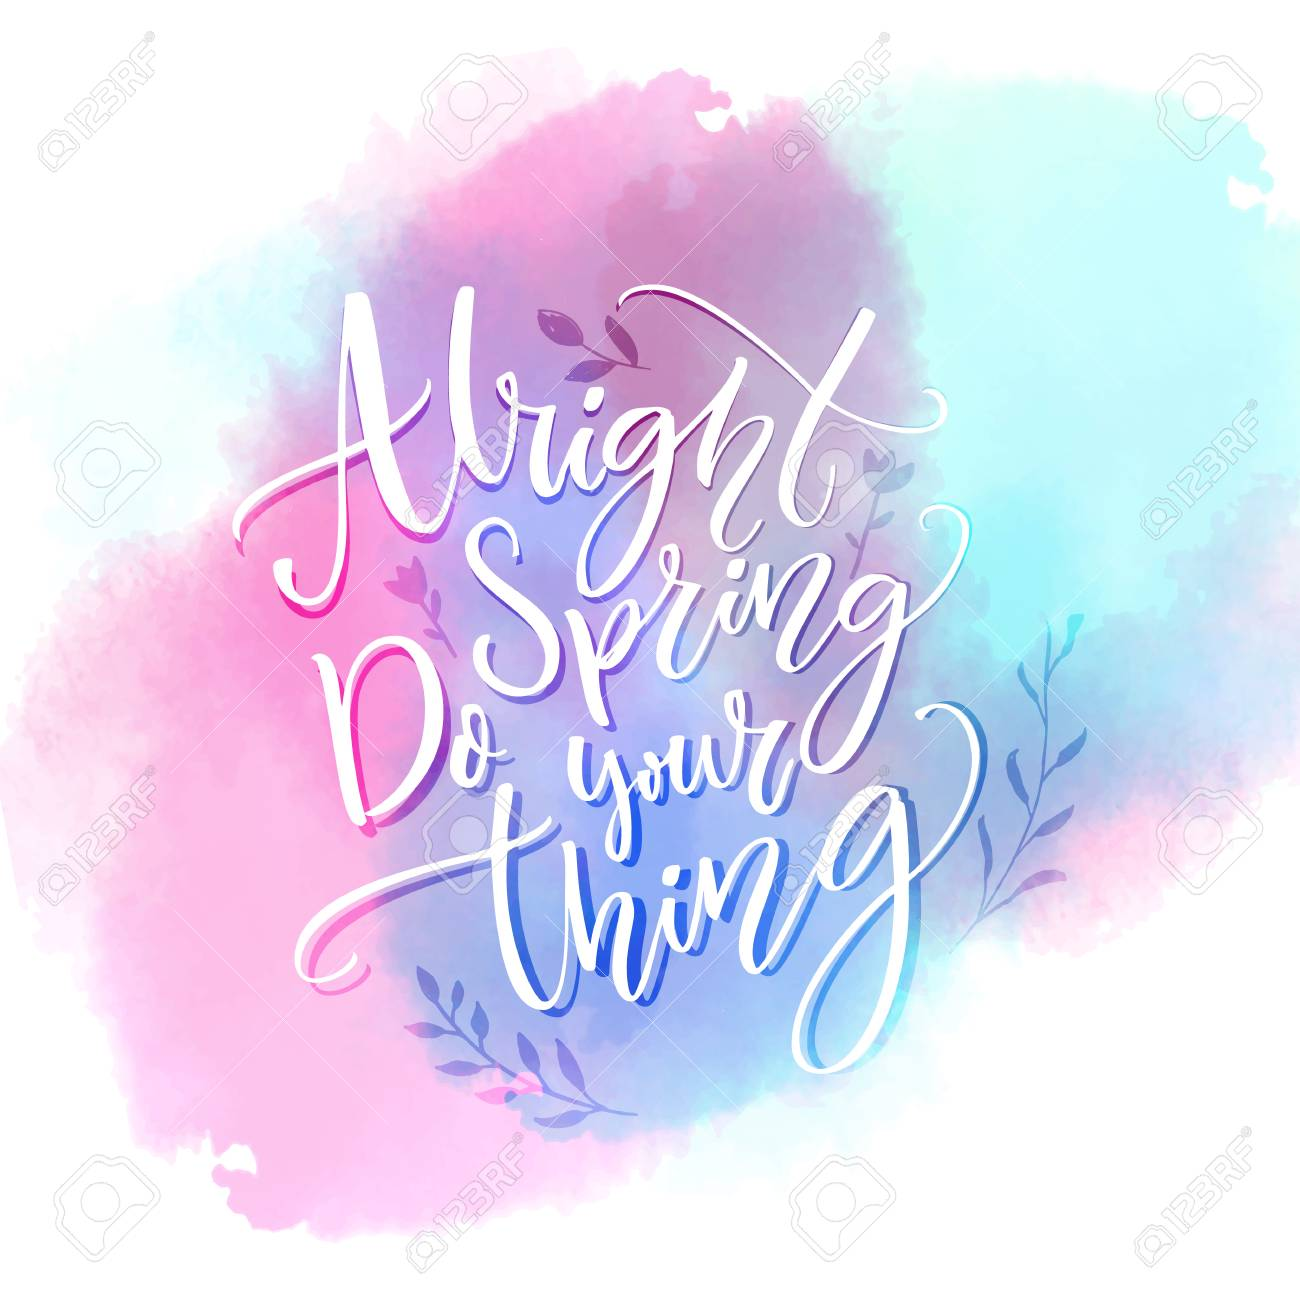 Alright Spring Do Your Thing Funny Inspirational Quote About